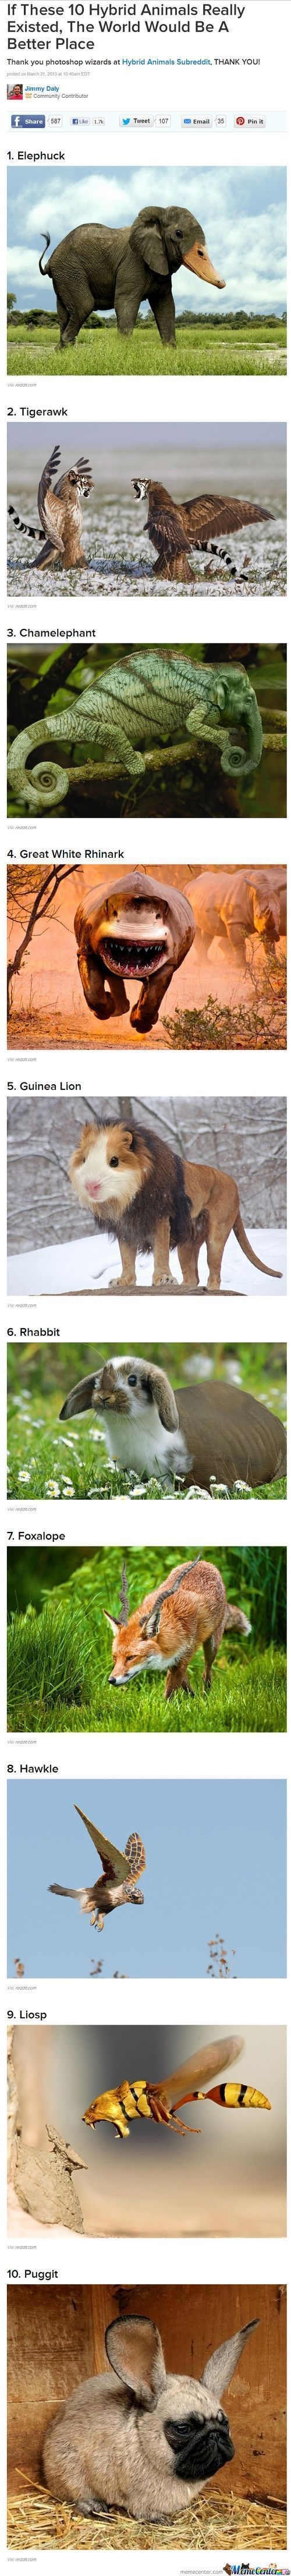 Choose Your Animal!